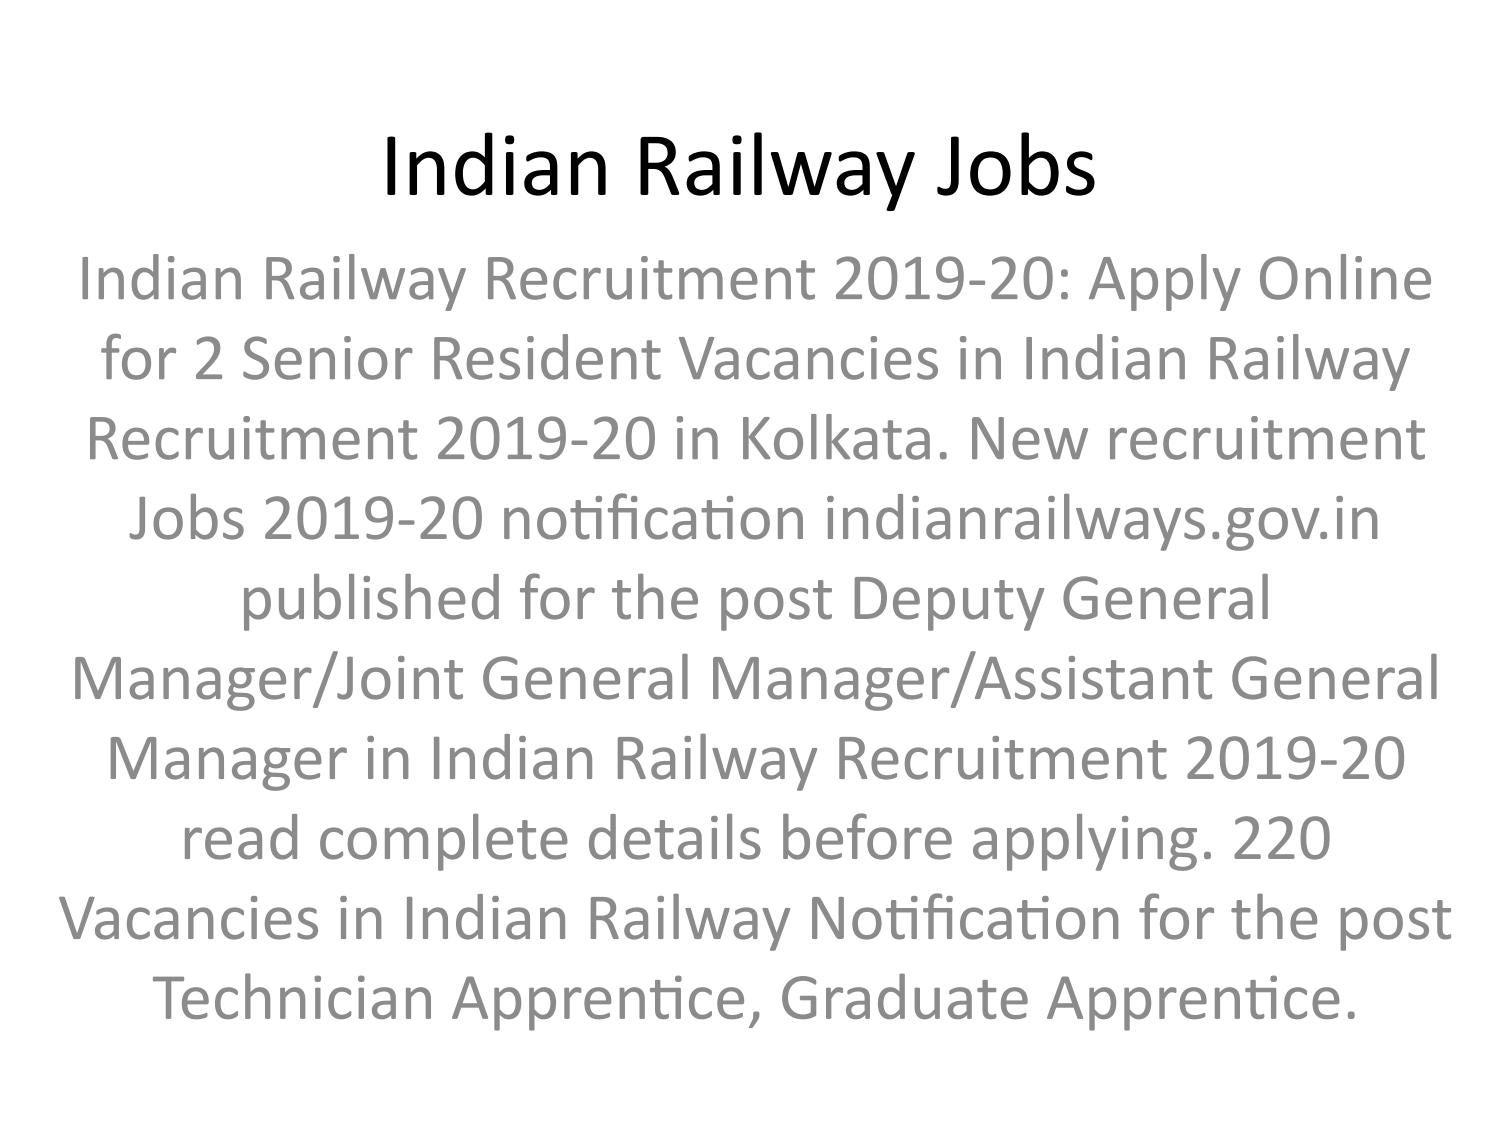 Indian Railway Jobs 2019 by rs8385565 - issuu